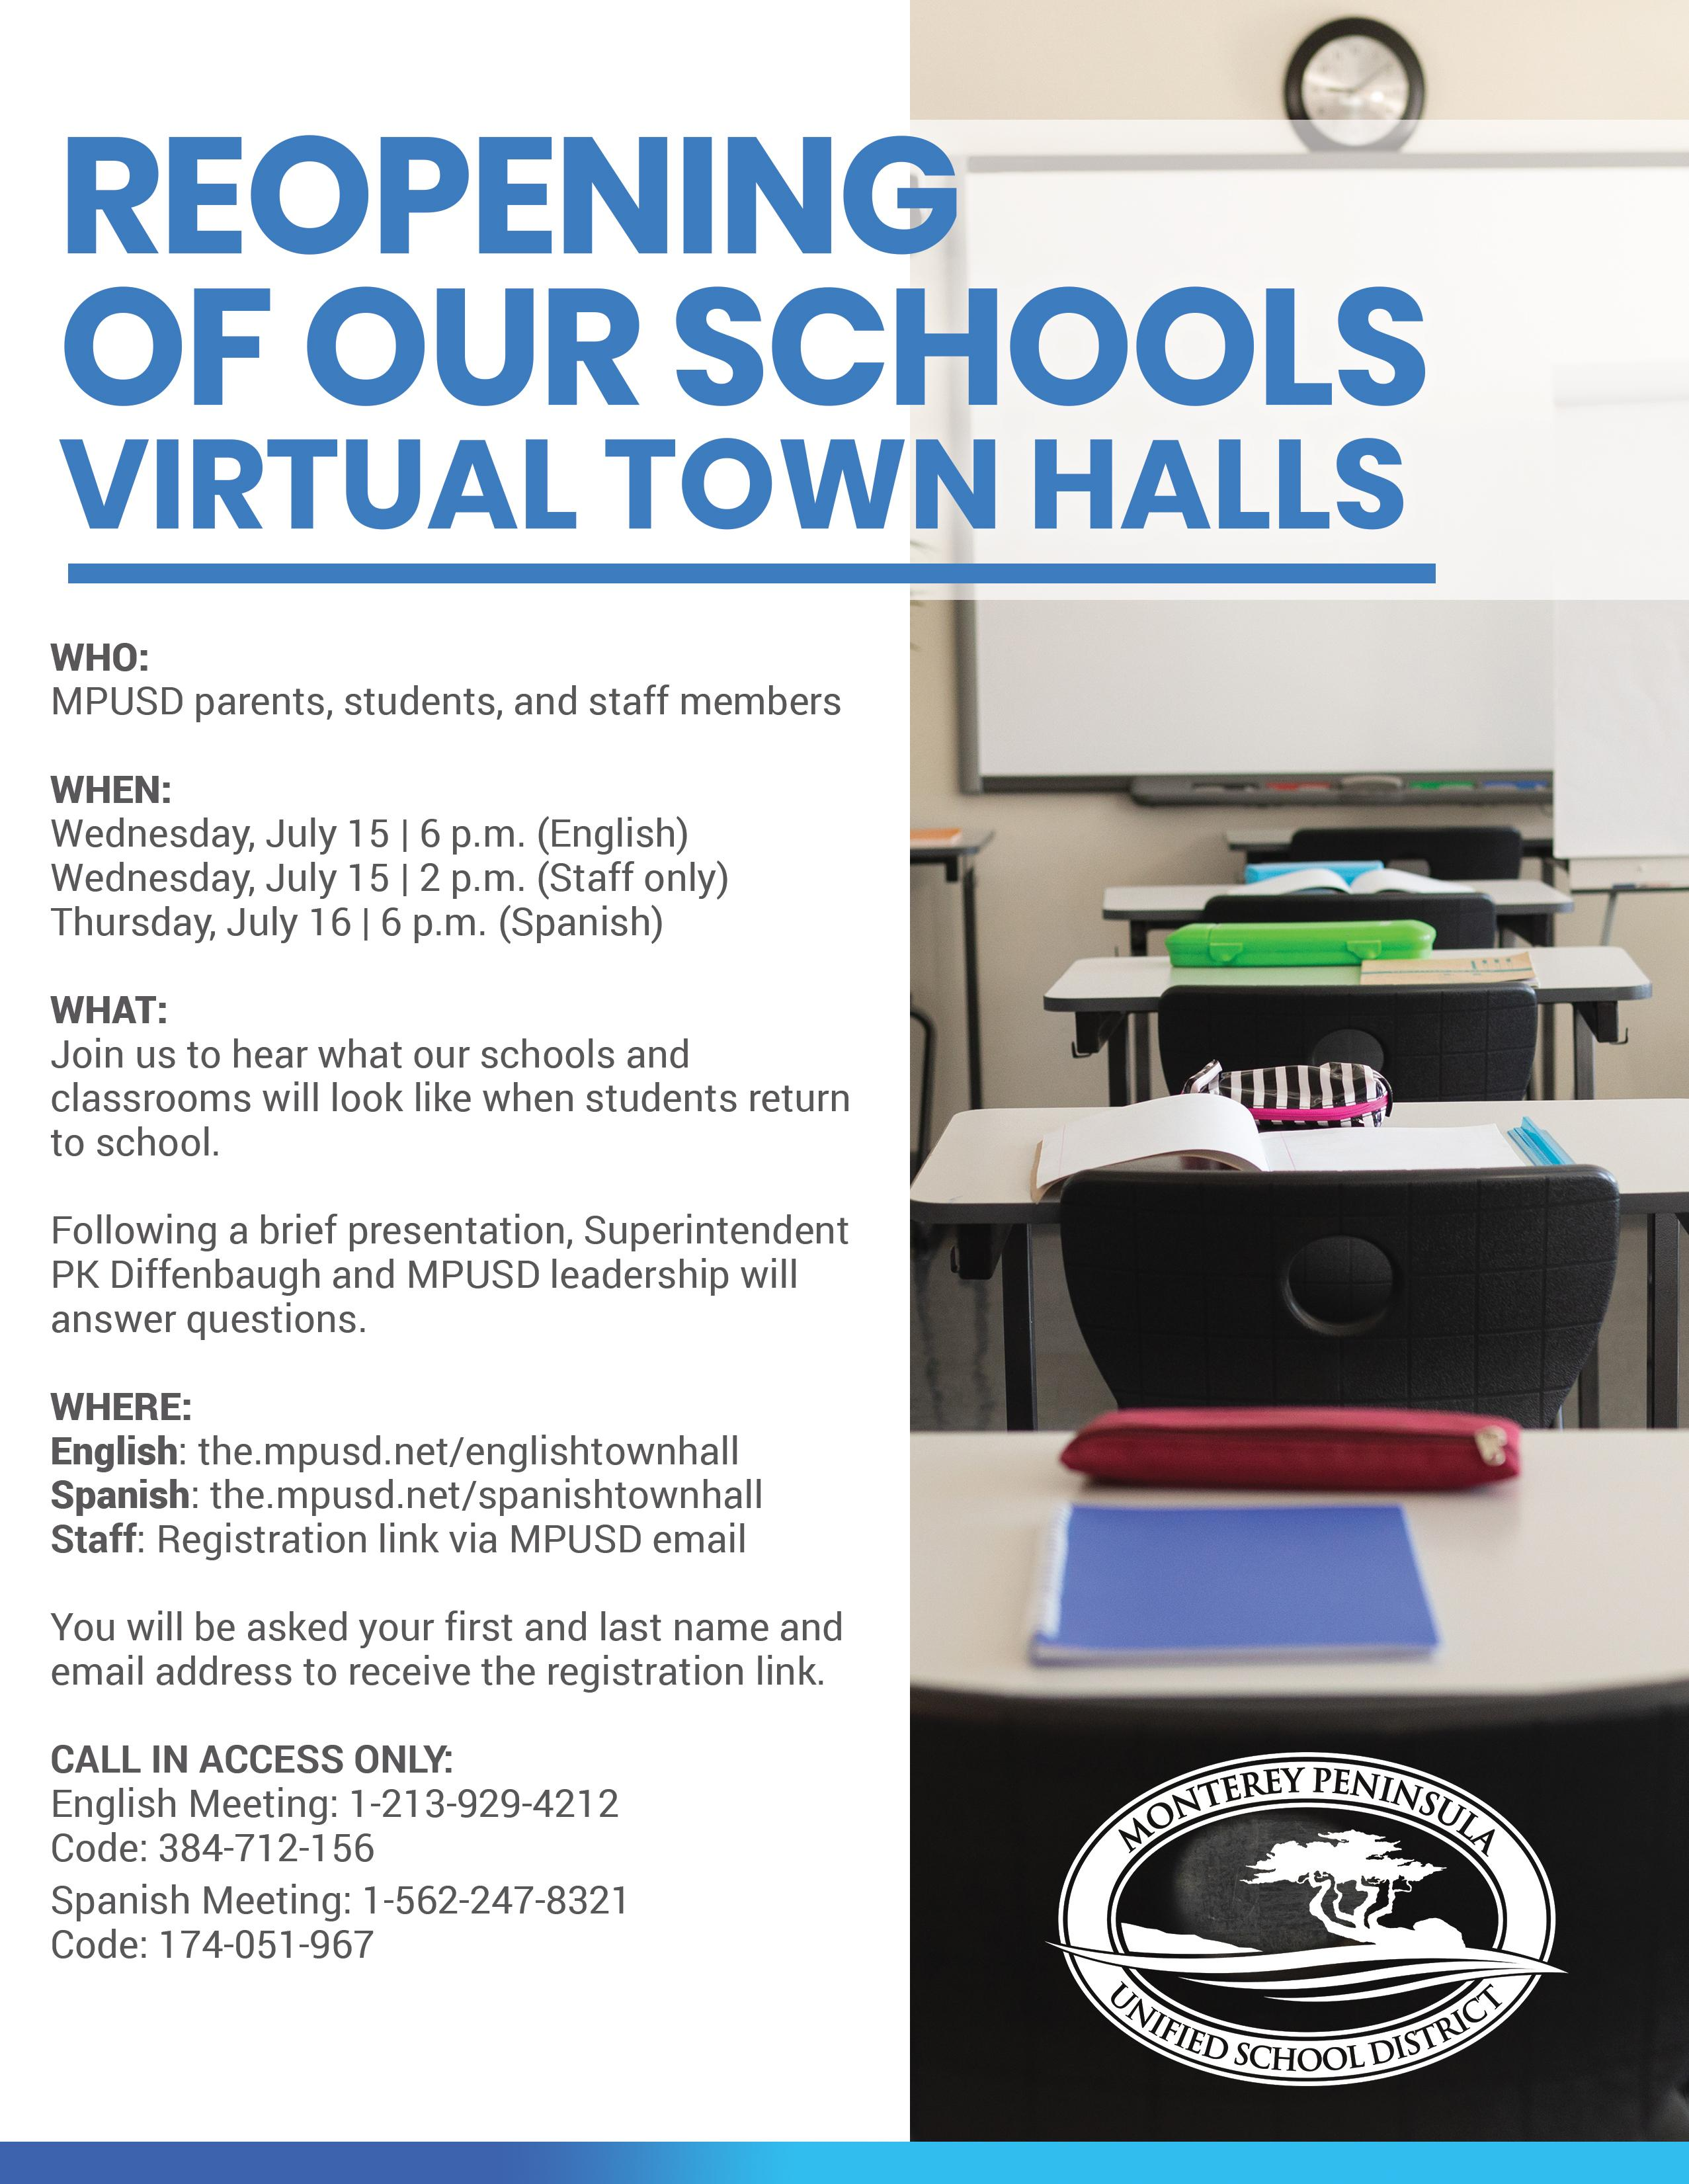 Town Hall on July 15 or July 16 to hear about the reopening of our schools.